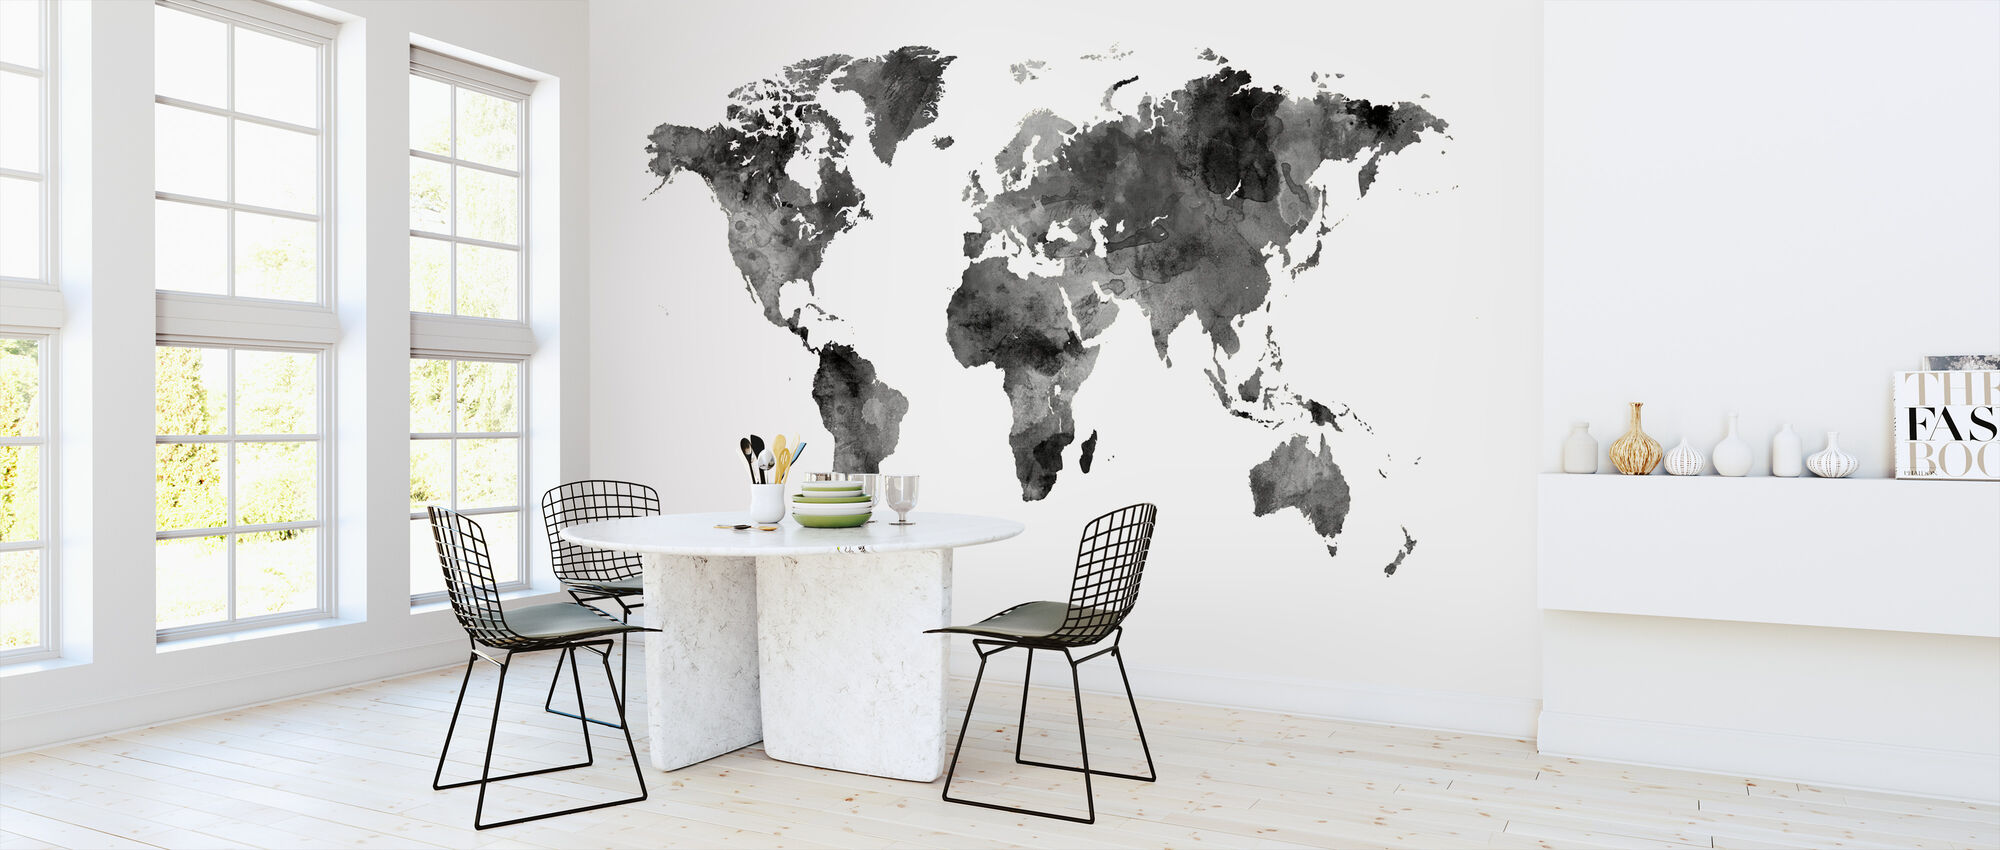 Watercolour World Map Black - Wallpaper - Kitchen